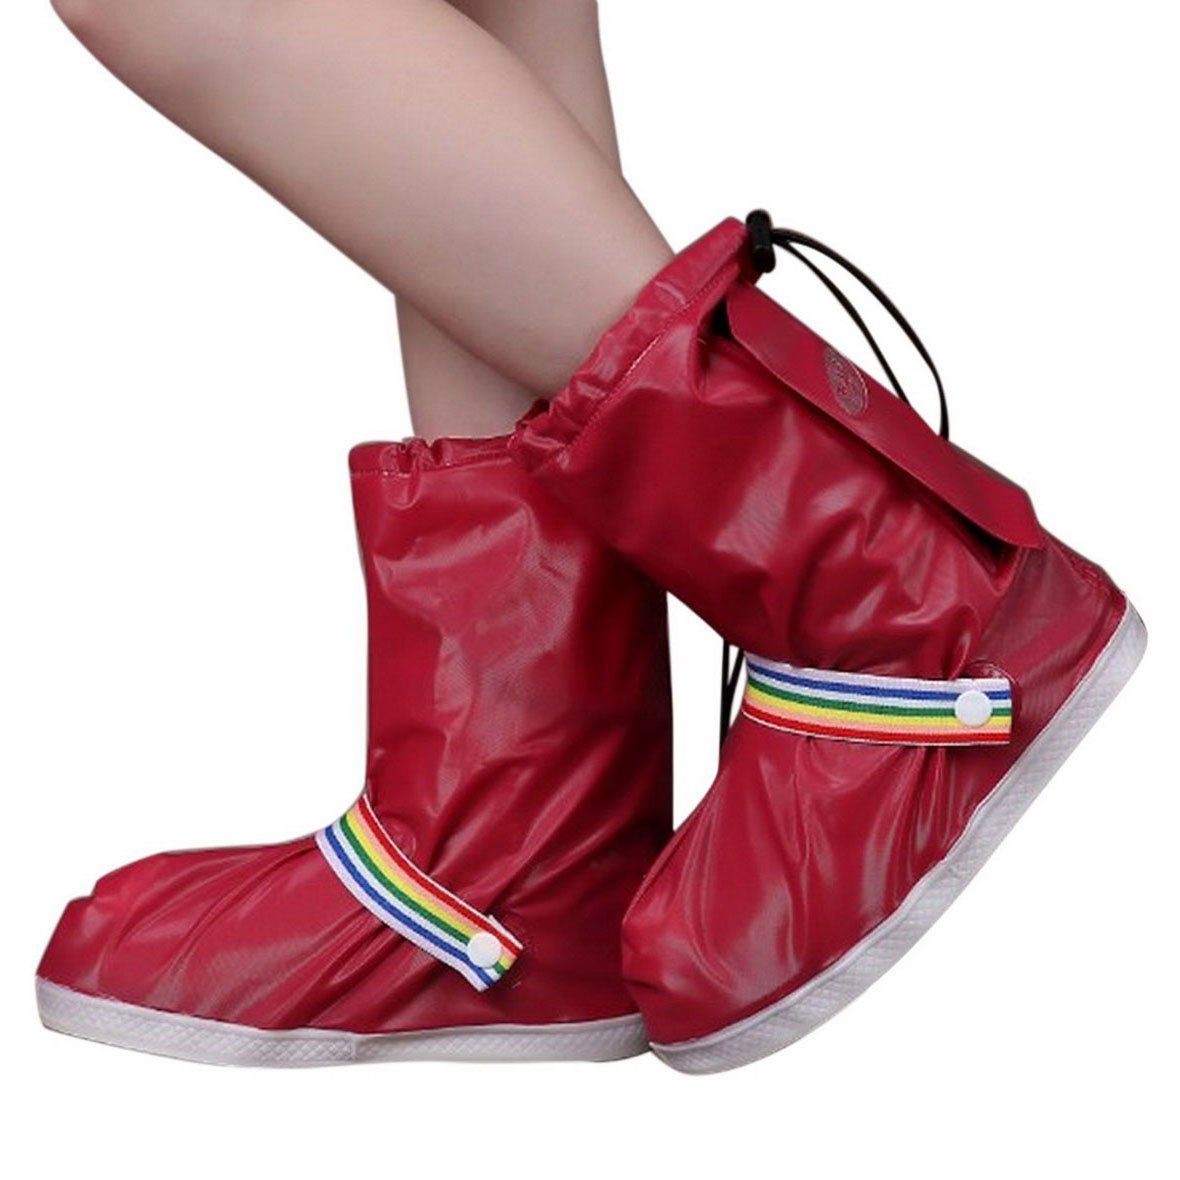 FEOYA Women Foldable Rain Gear Boot Shoes Cover for Bicycling Size XL-Wine Red by FEOYA (Image #1)